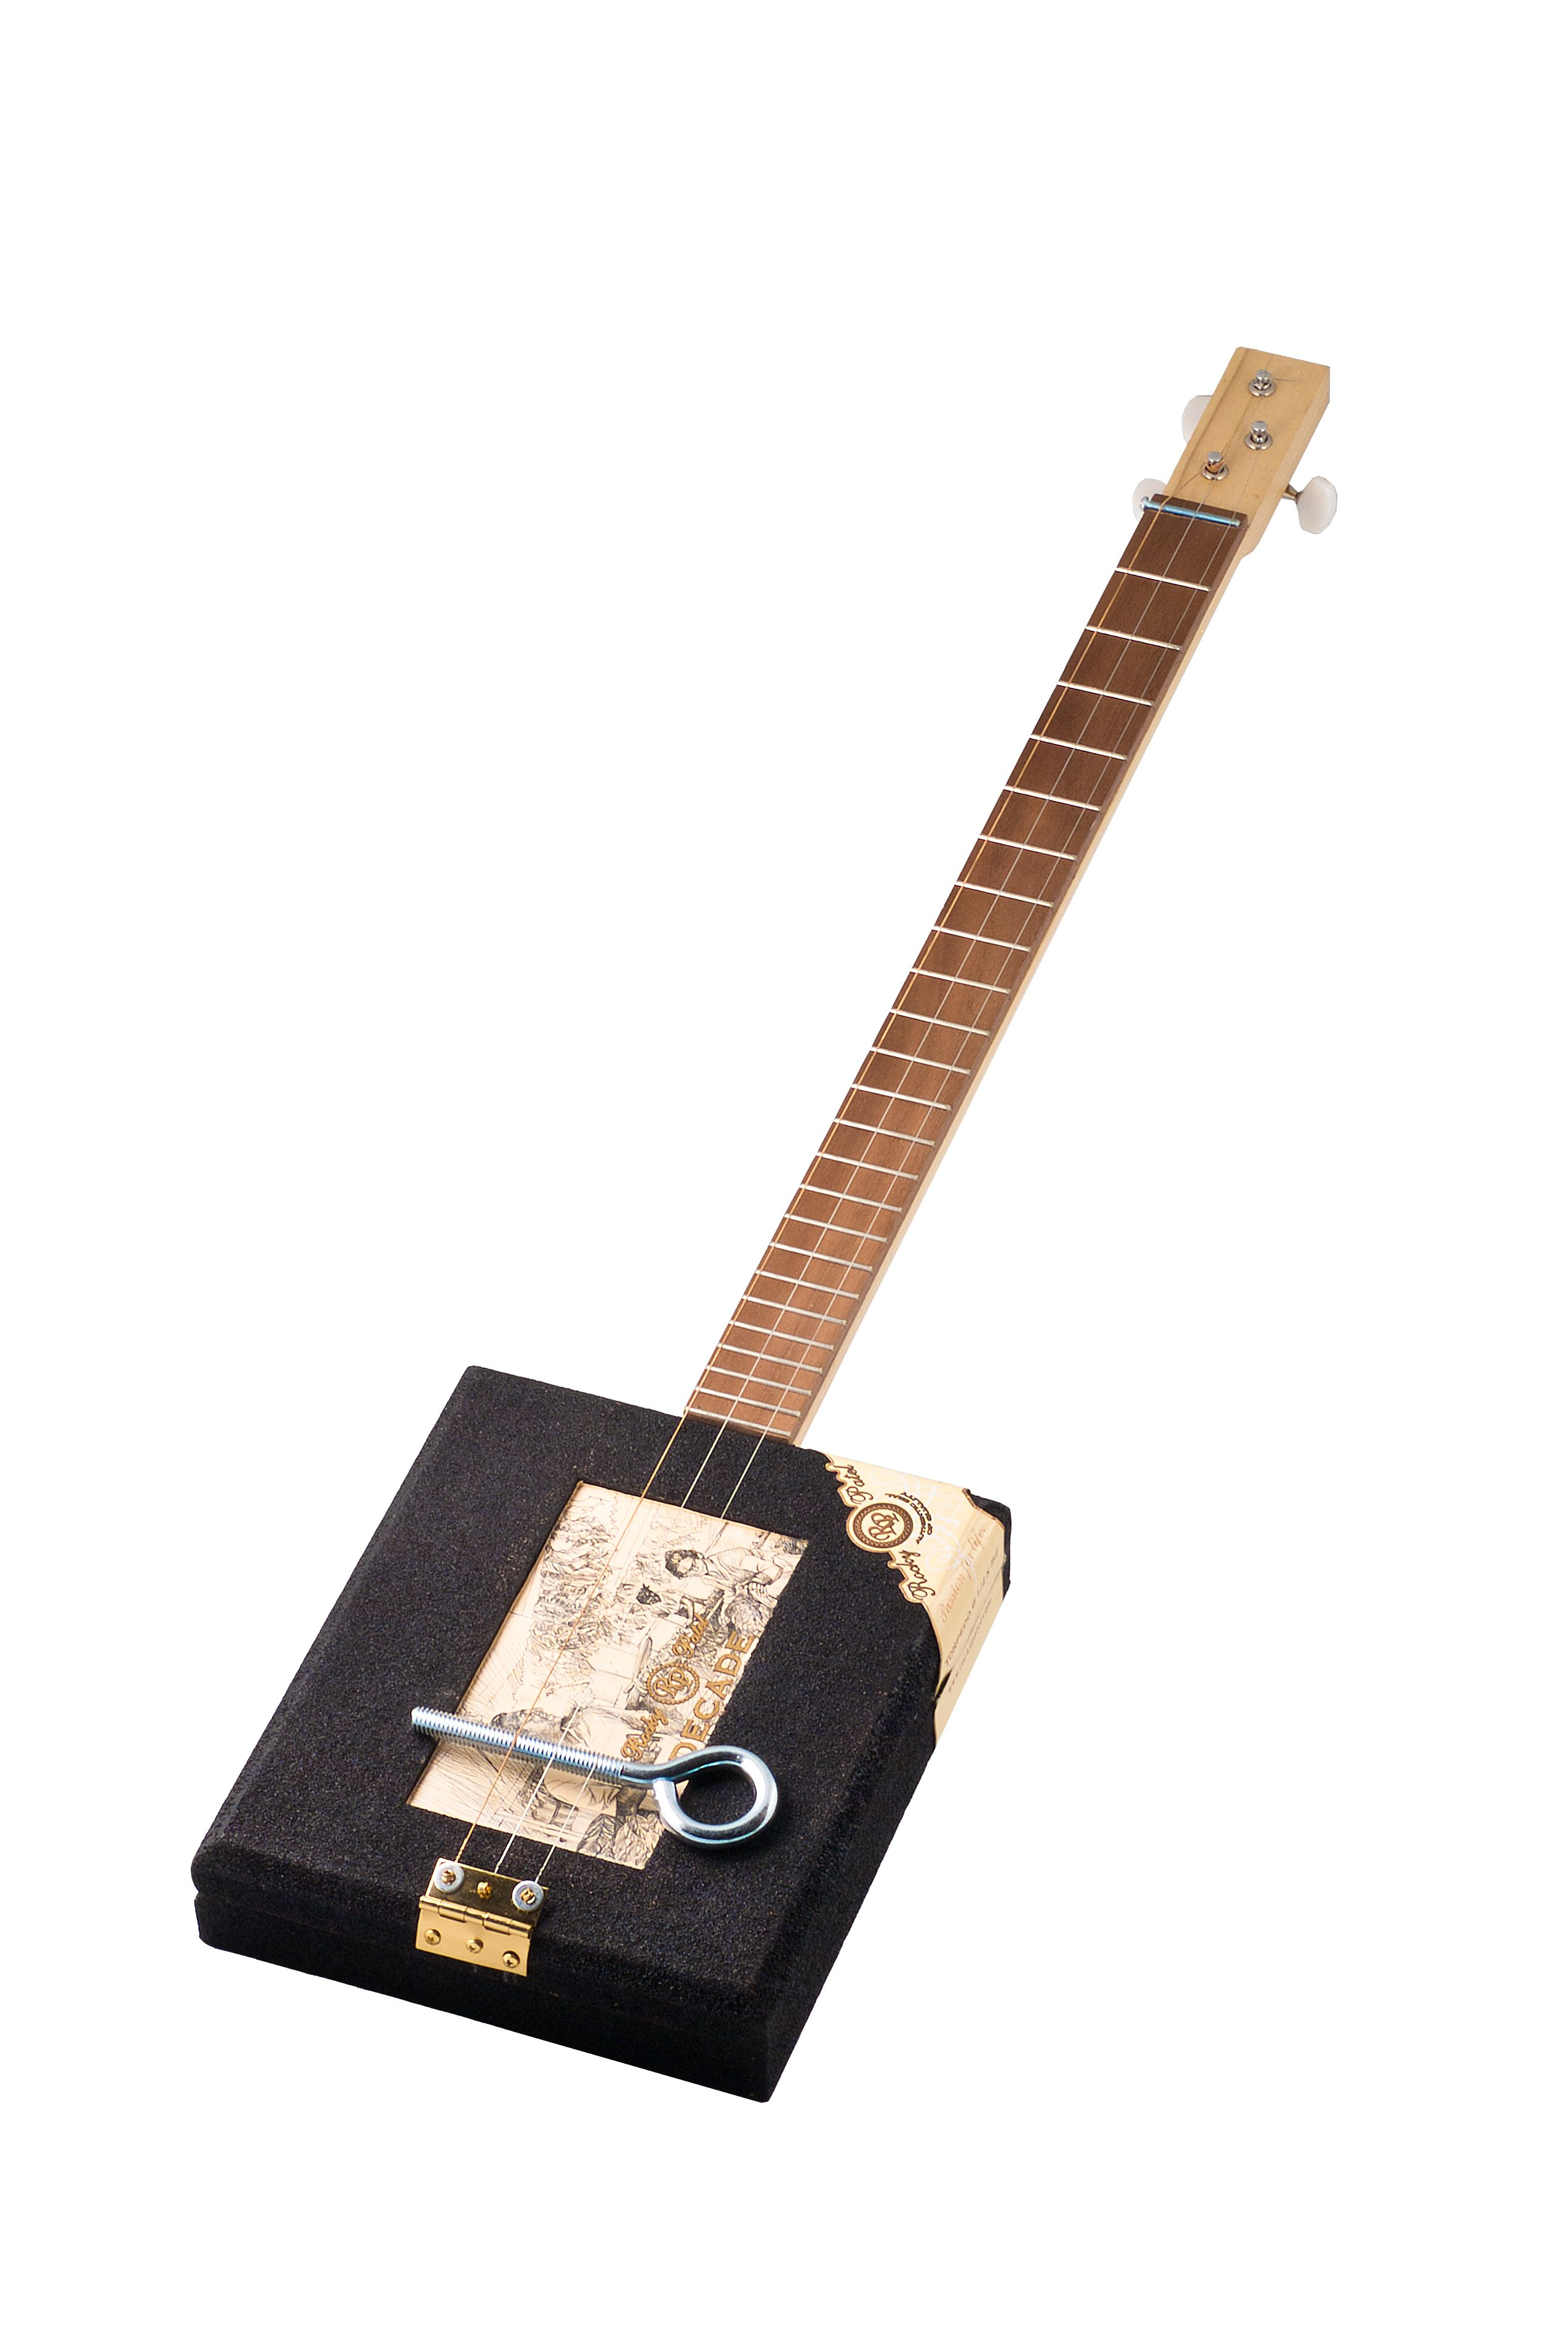 rocky patel 3 string acoustic cigar box guitar by younique ukes in strum ent 3 string guitar. Black Bedroom Furniture Sets. Home Design Ideas